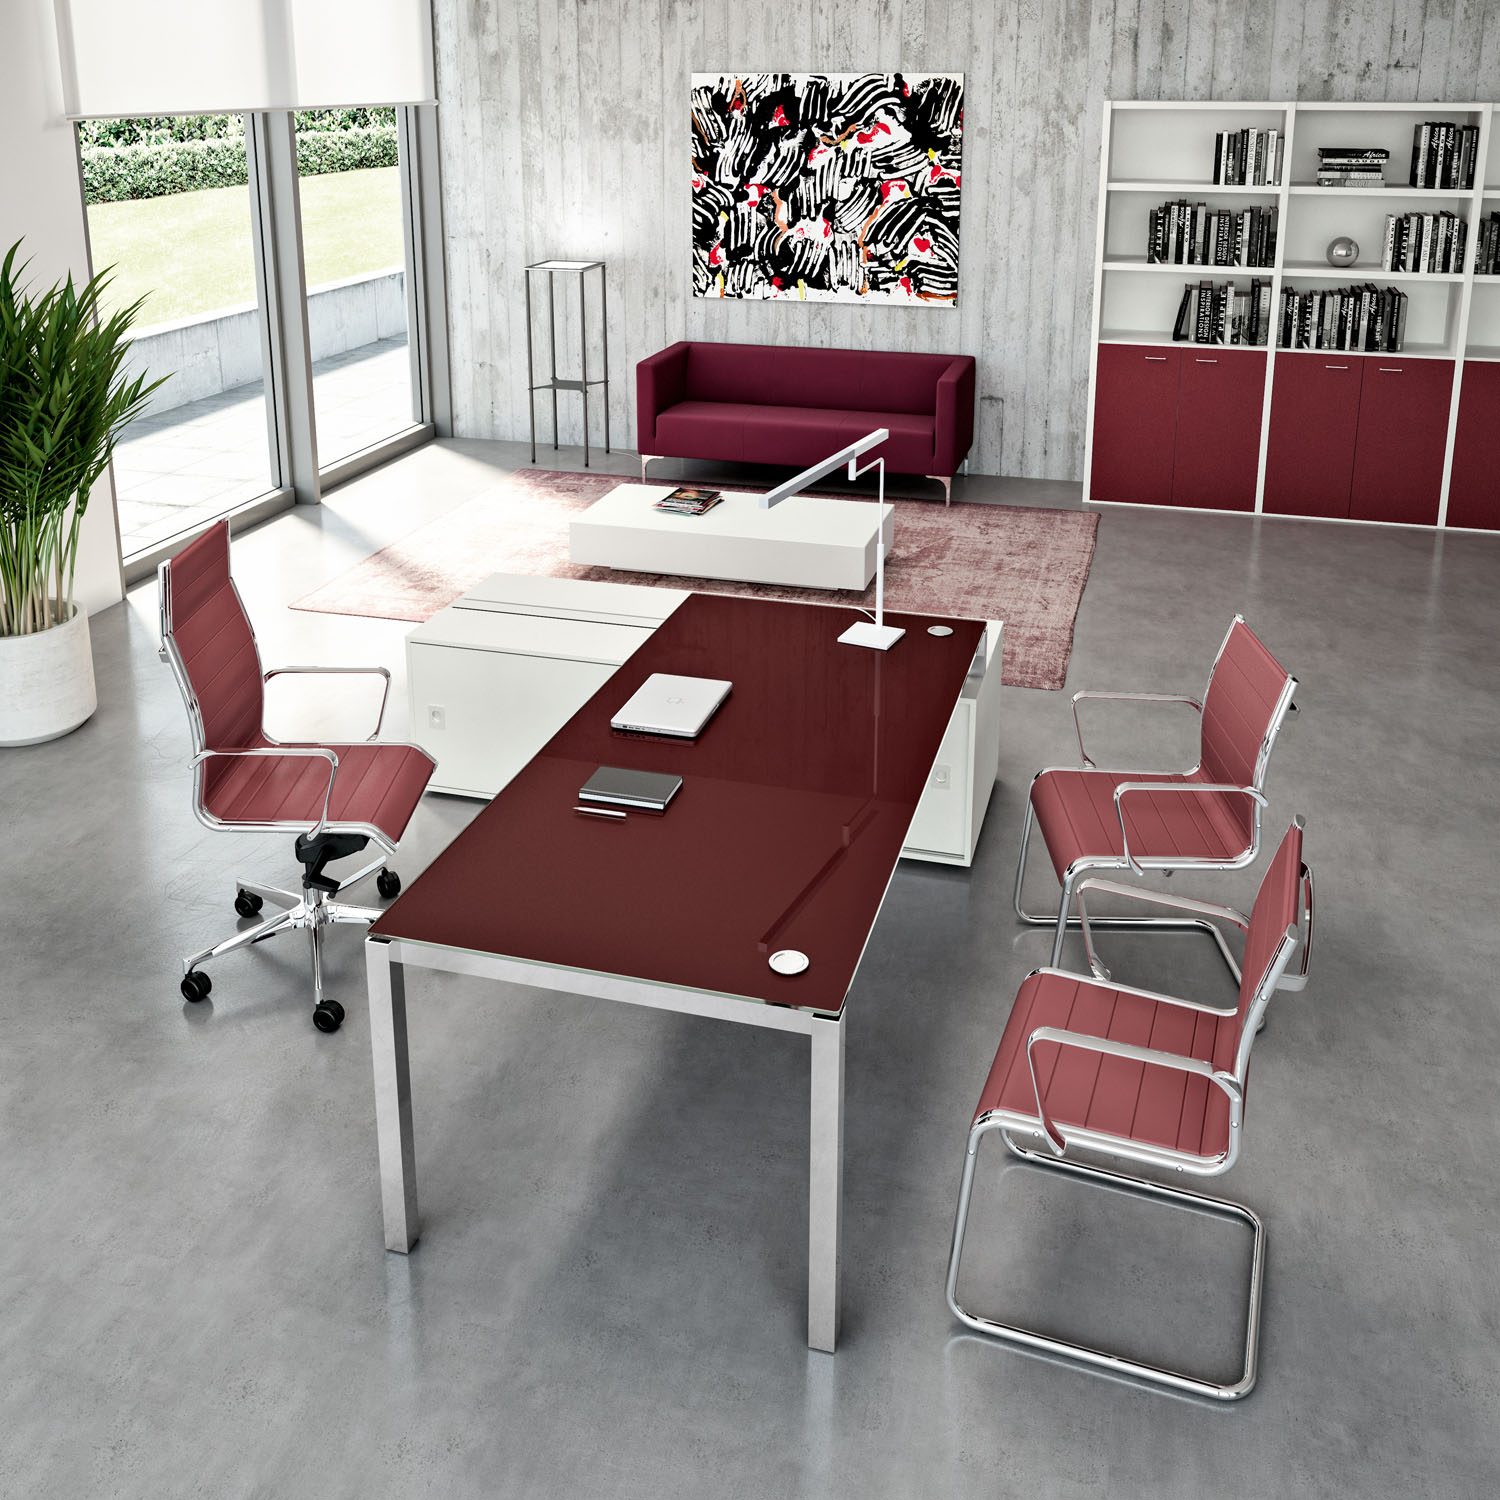 cabinets furniture simple envy furnitures on modular of coworking pinterest images best office benefits